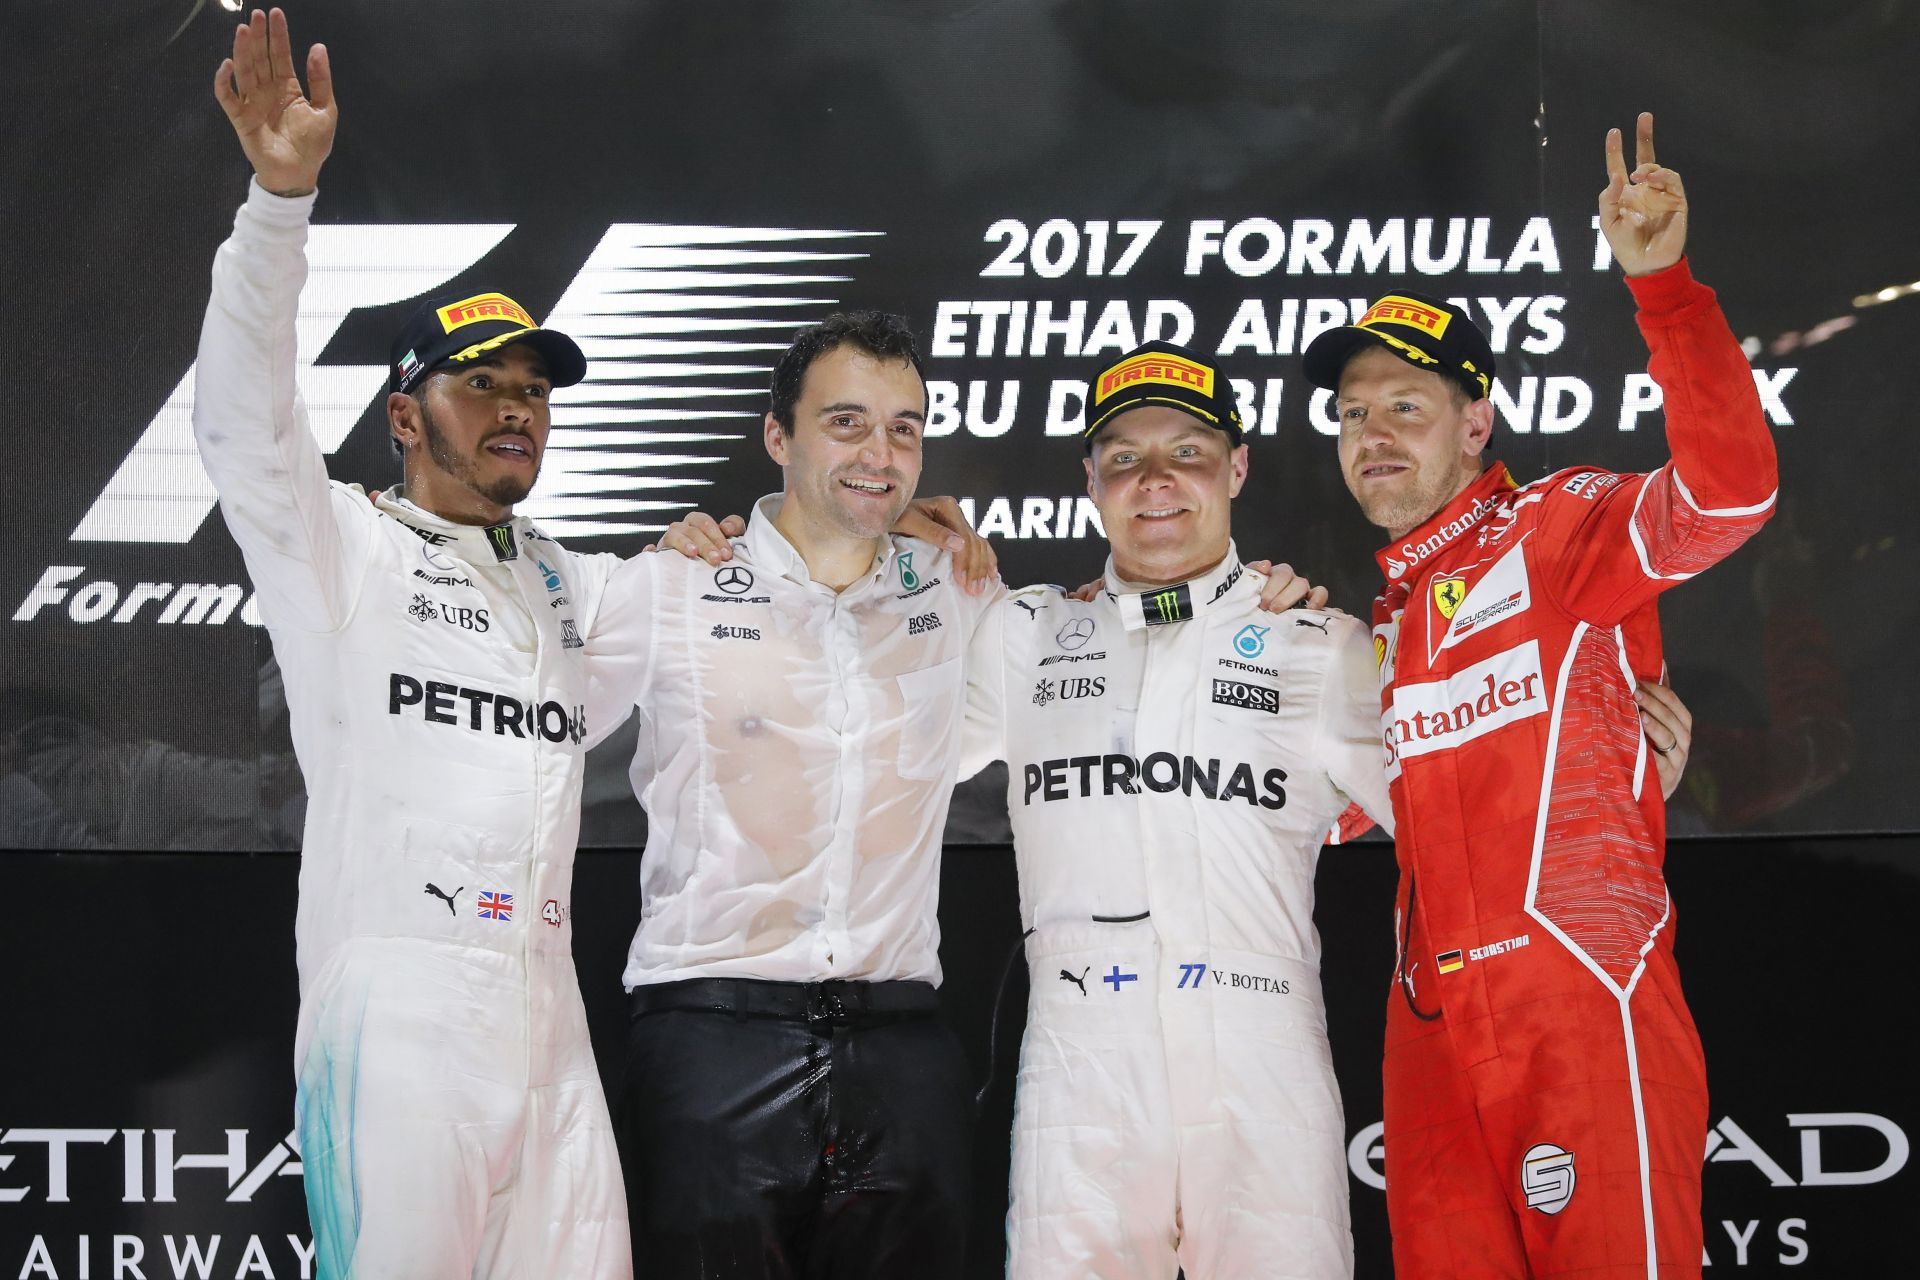 Formula One Grand Prix of Abu Dhabi